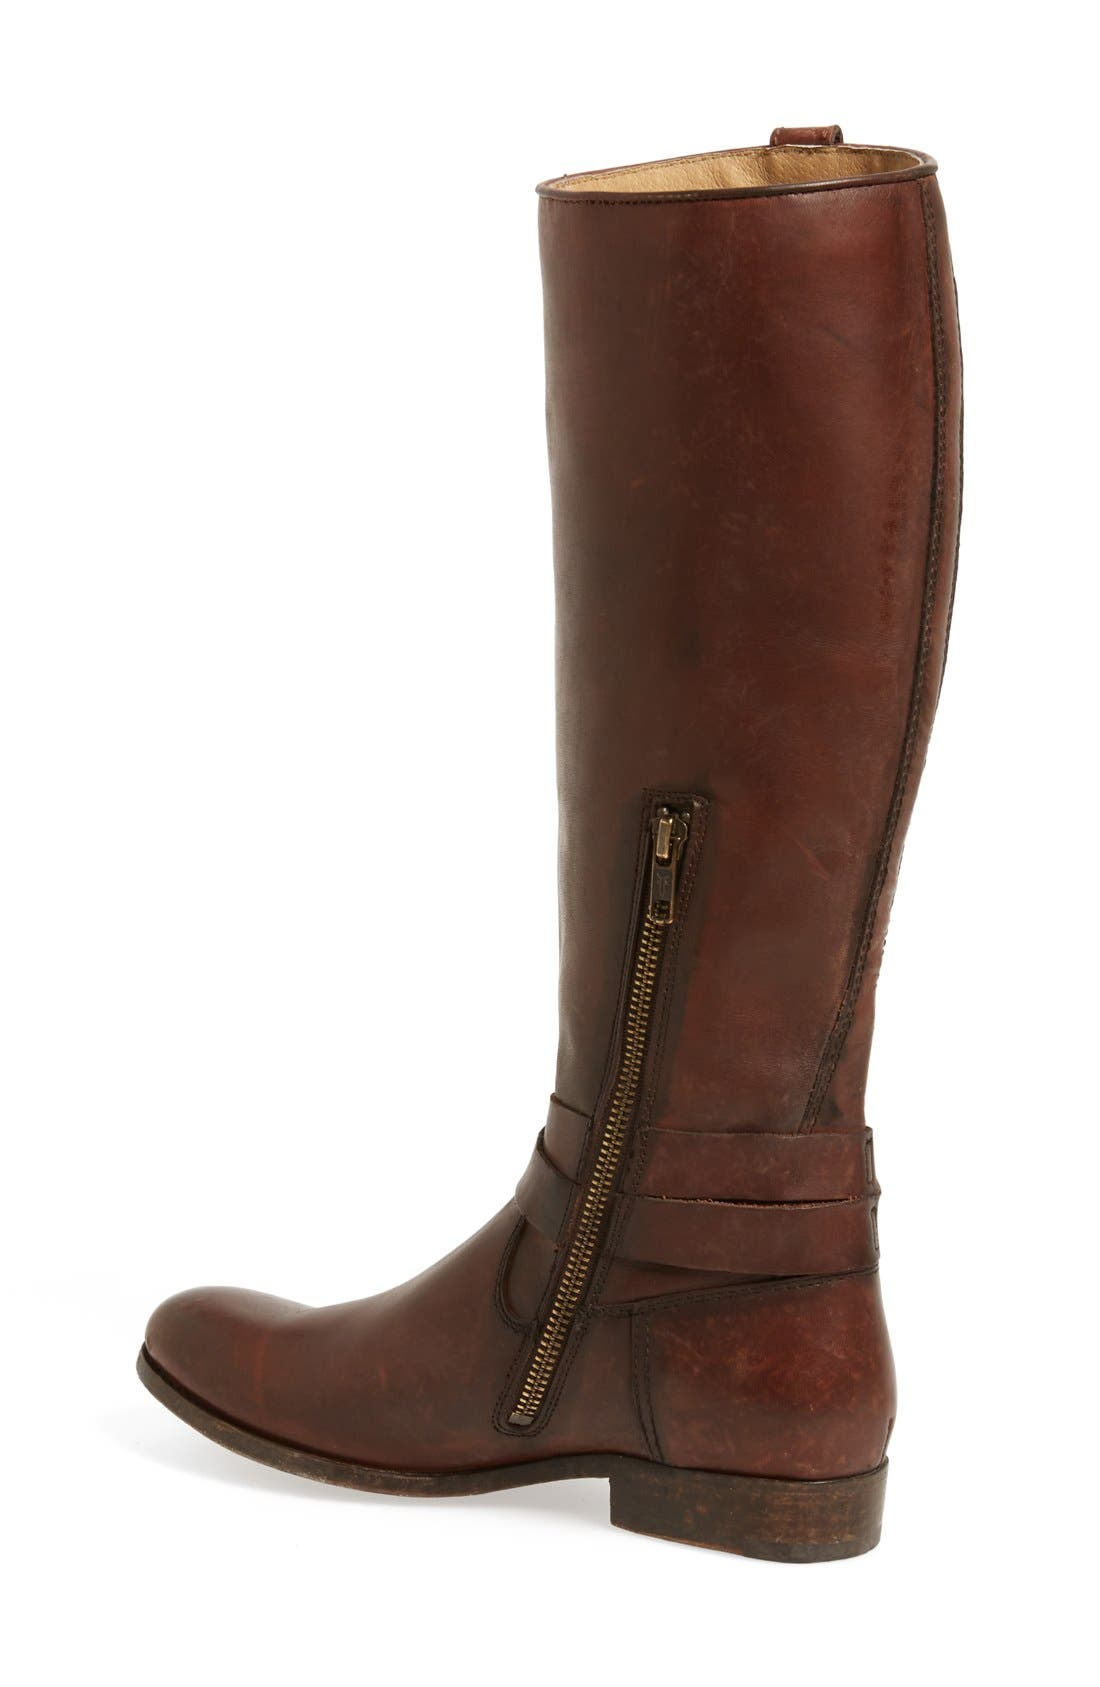 Alternate Image 2  - Frye 'Melissa Knotted' Tall Boot (Women)